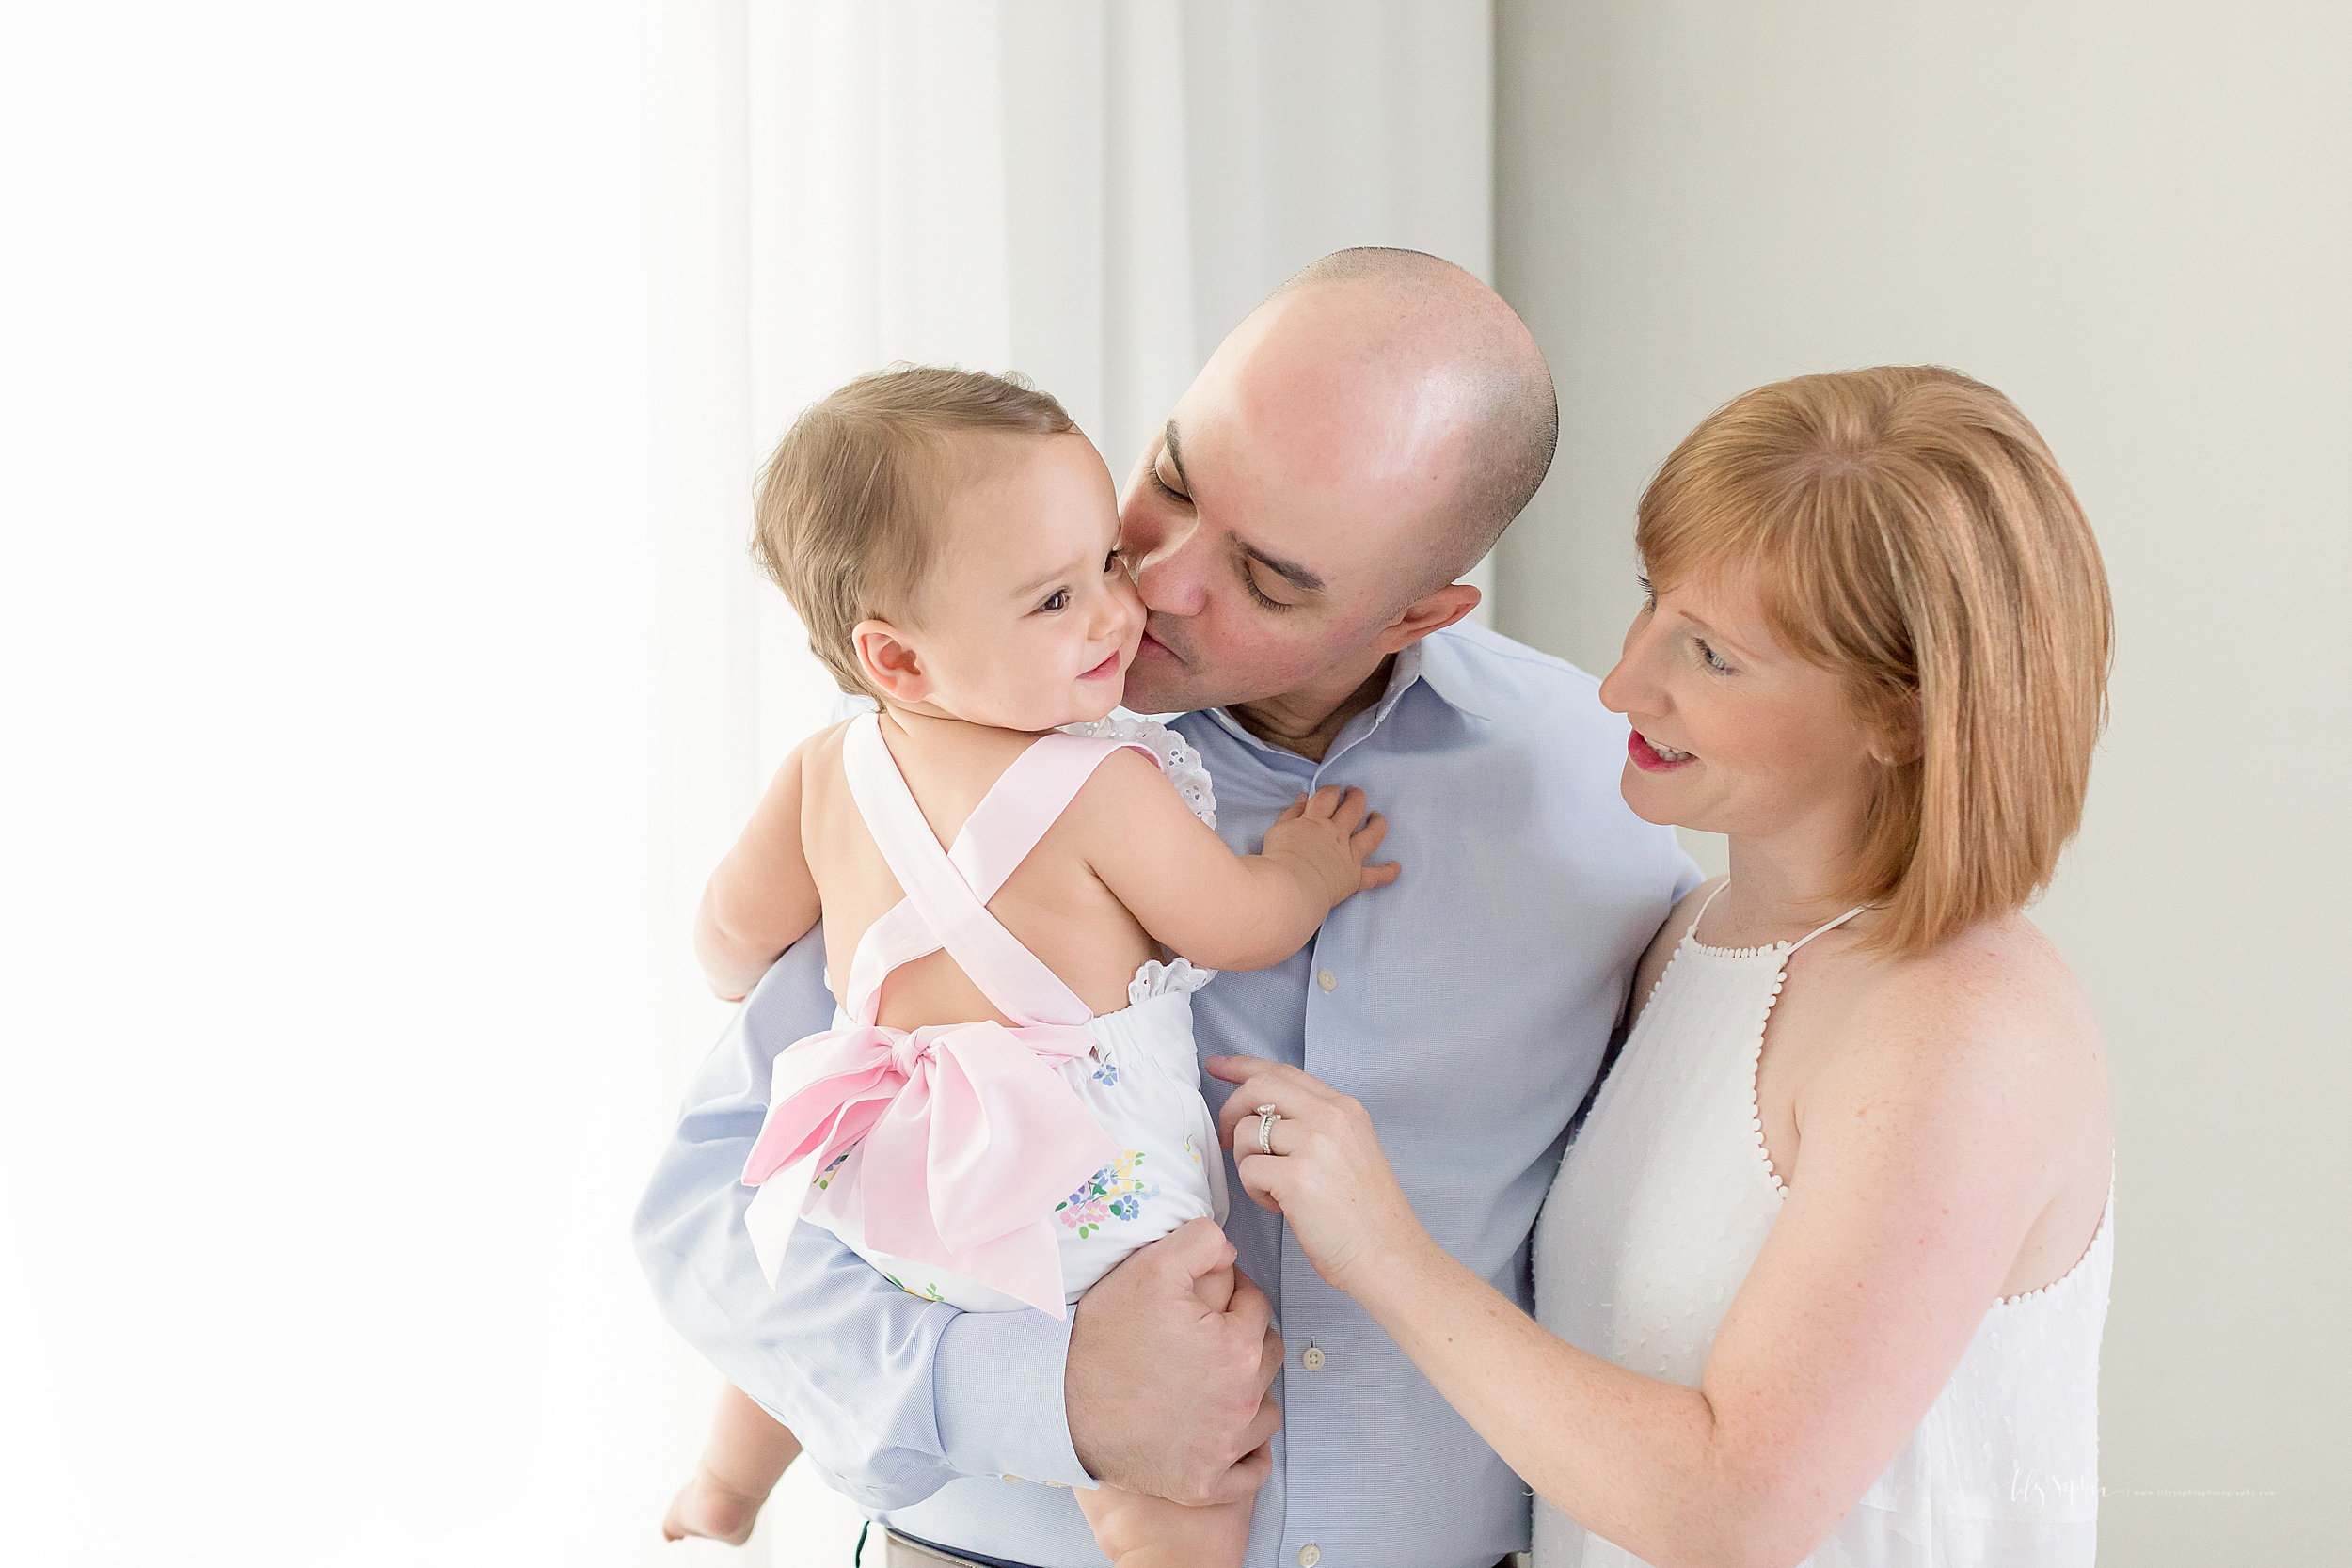 Mom, Dad and one year old in a natural light studio in Atlanta pose for a picture.  Balding Dad is hold his daughter and kissing her on the cheek.  Red haired mom is looking at the daughter and reaching out to tickle her.  The one year old is smiling and holding on to Dad's arm and chest.